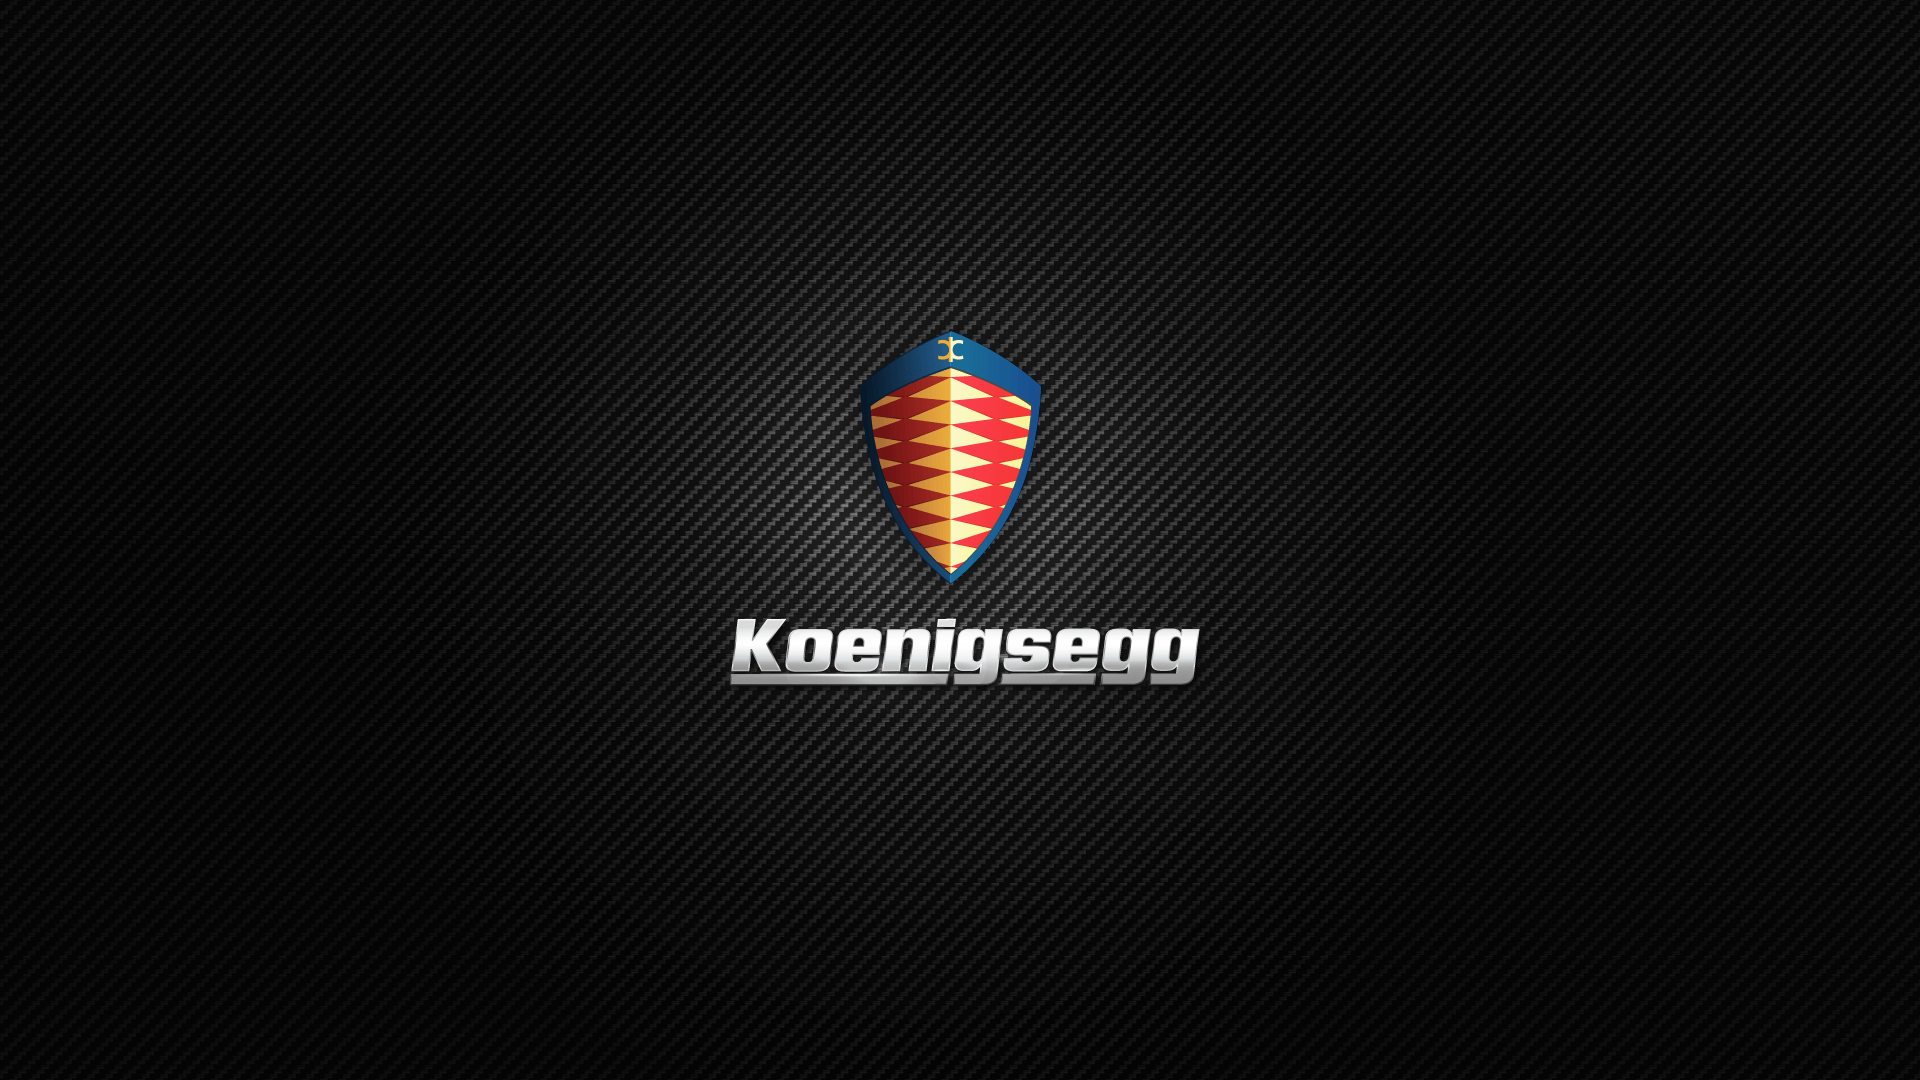 Koenigsegg Logo Wallpapers HD